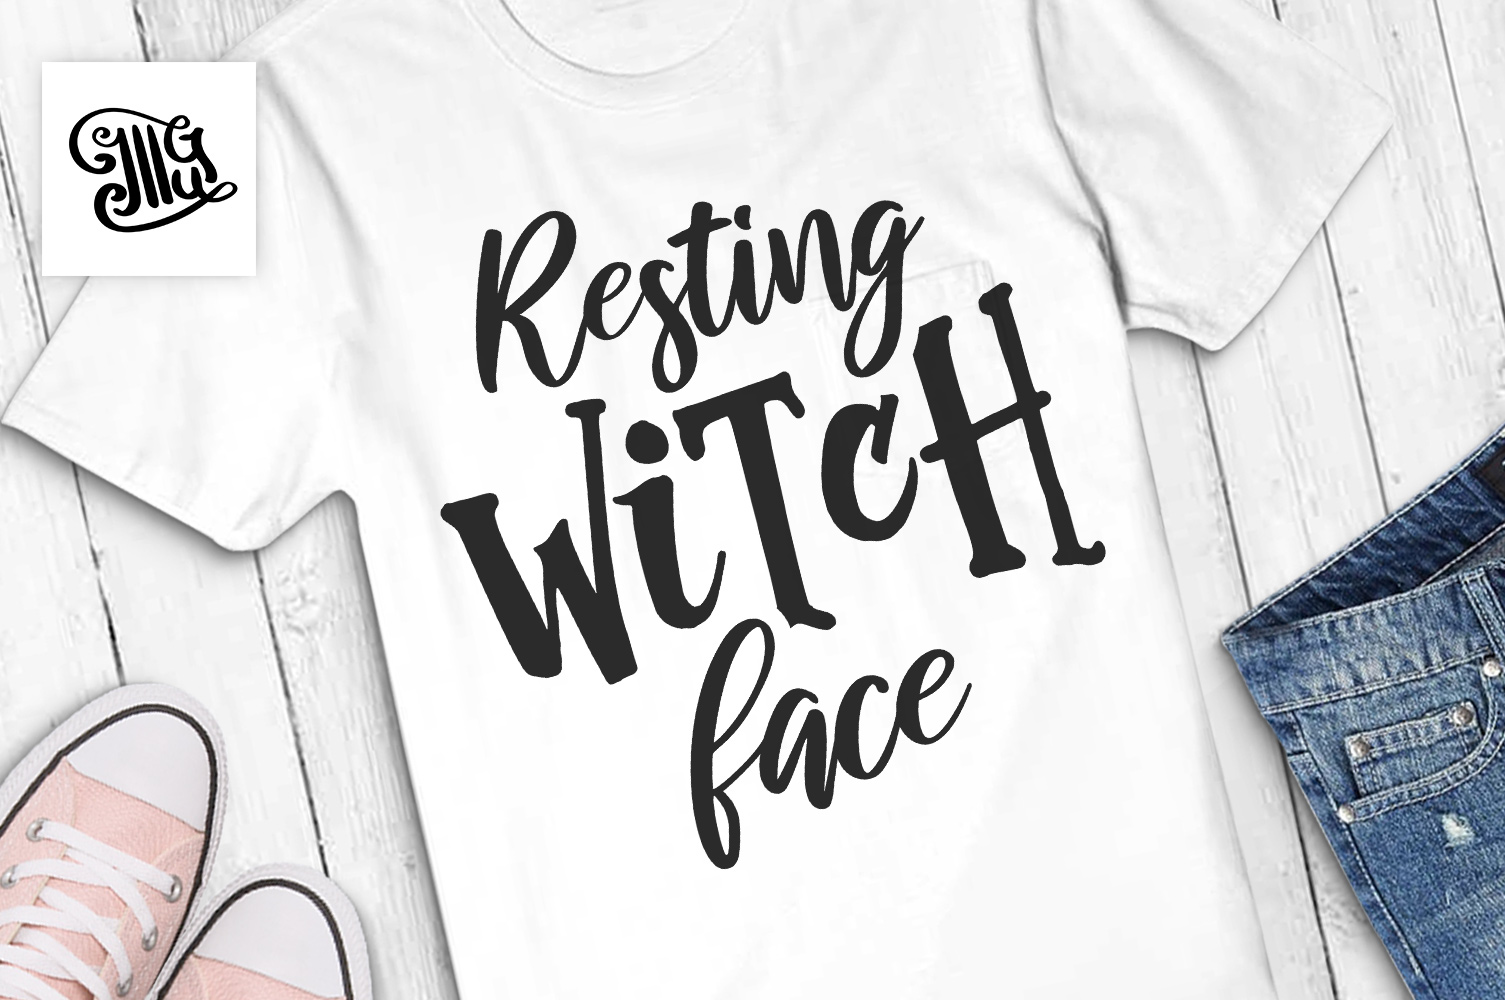 Resting witch face example image 1